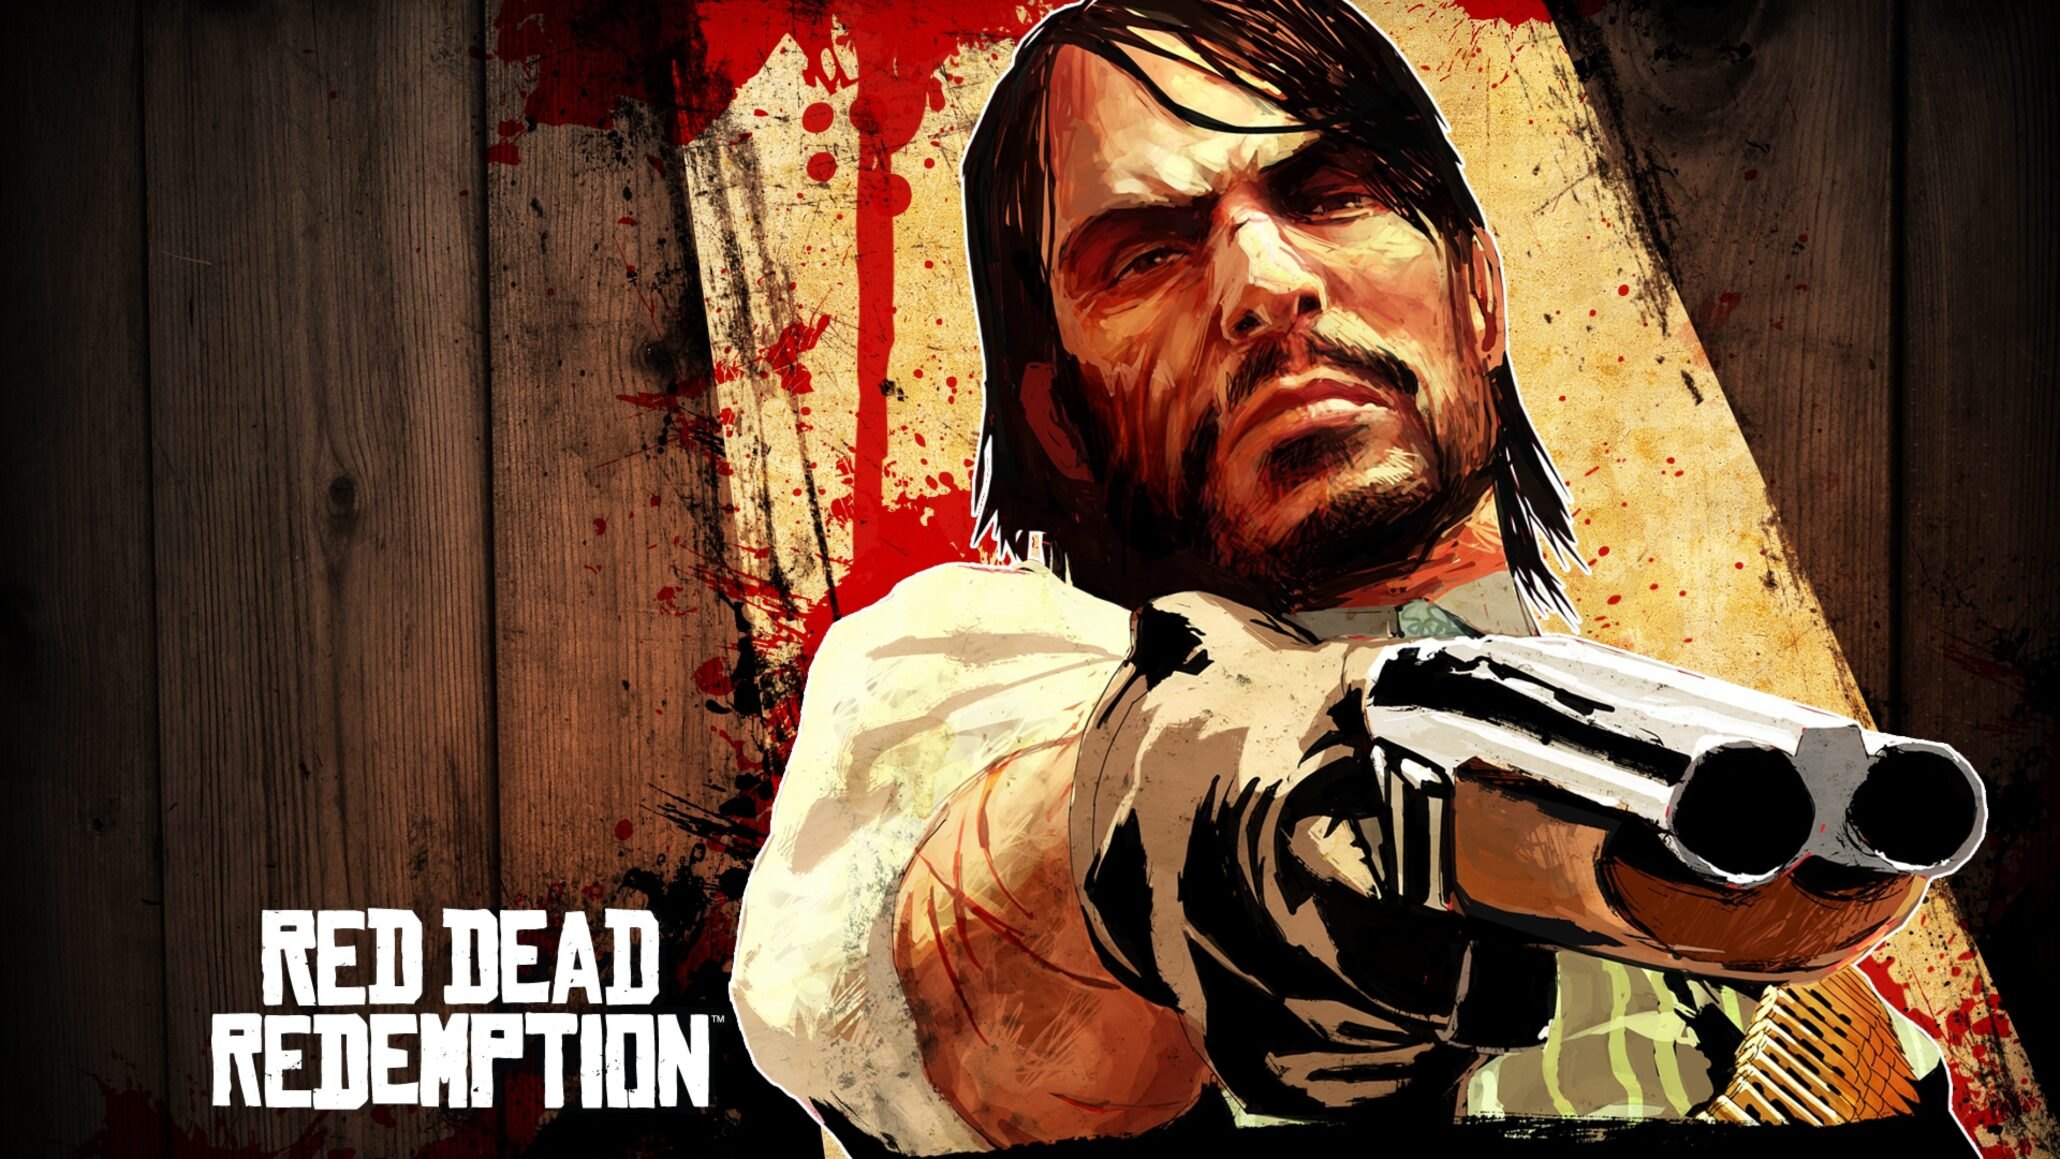 Red Dead Redemption Releases On Xbox One Via BC This Friday